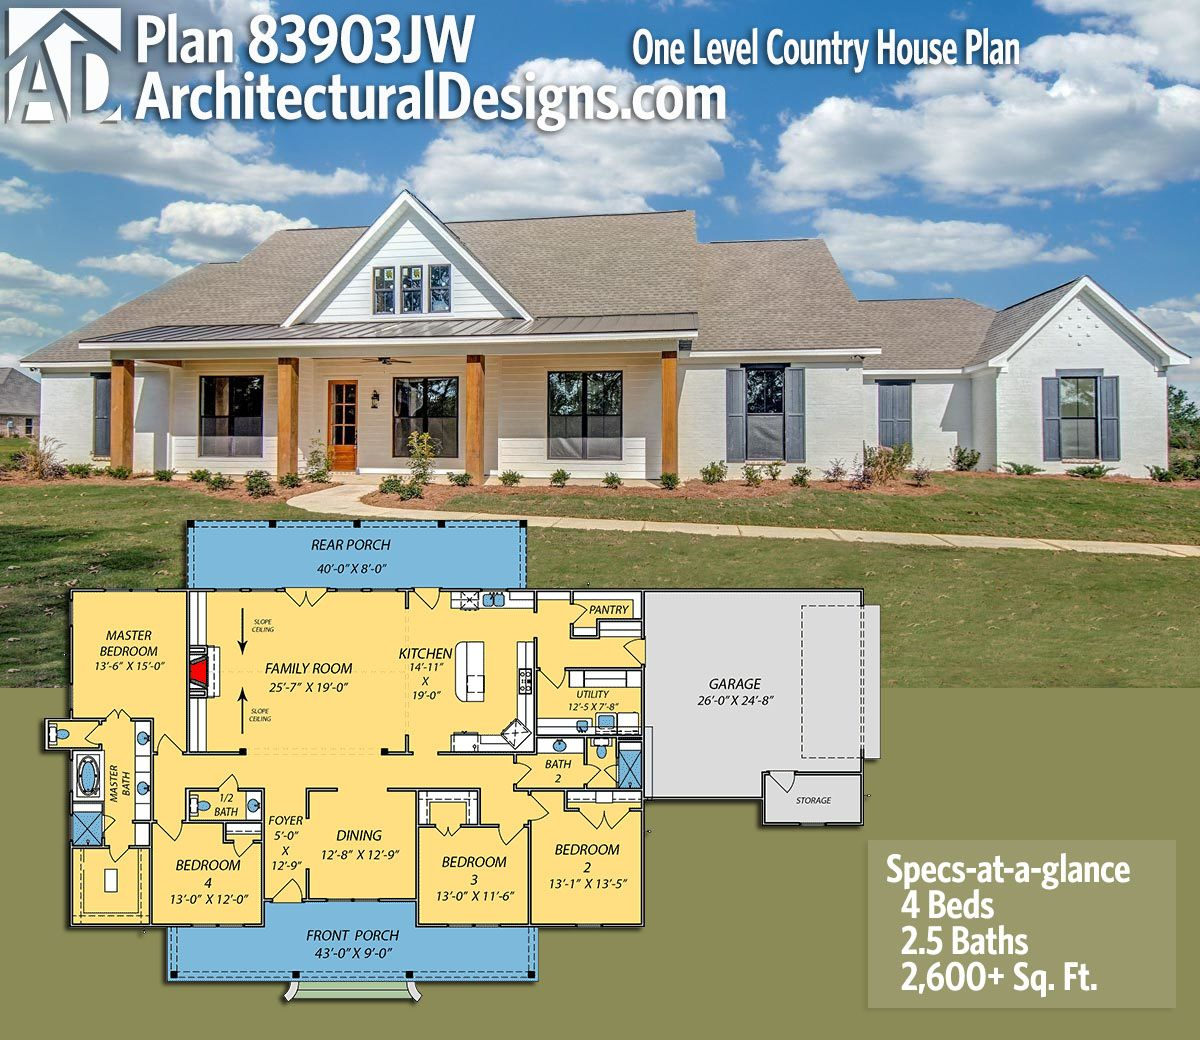 Plan 83903jw one level country house plan architectural for One level farmhouse plans